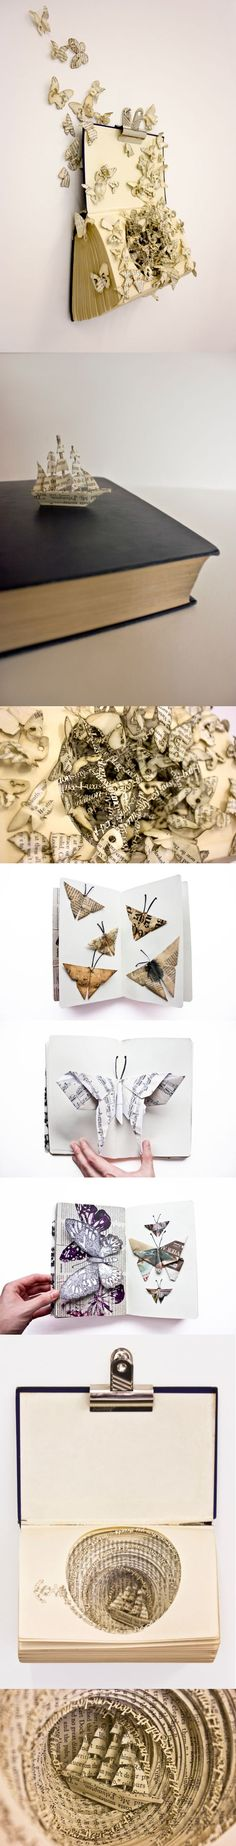 Book art by Thomas Wightman.  This is all gorgeous. Done by people withway more patience than me